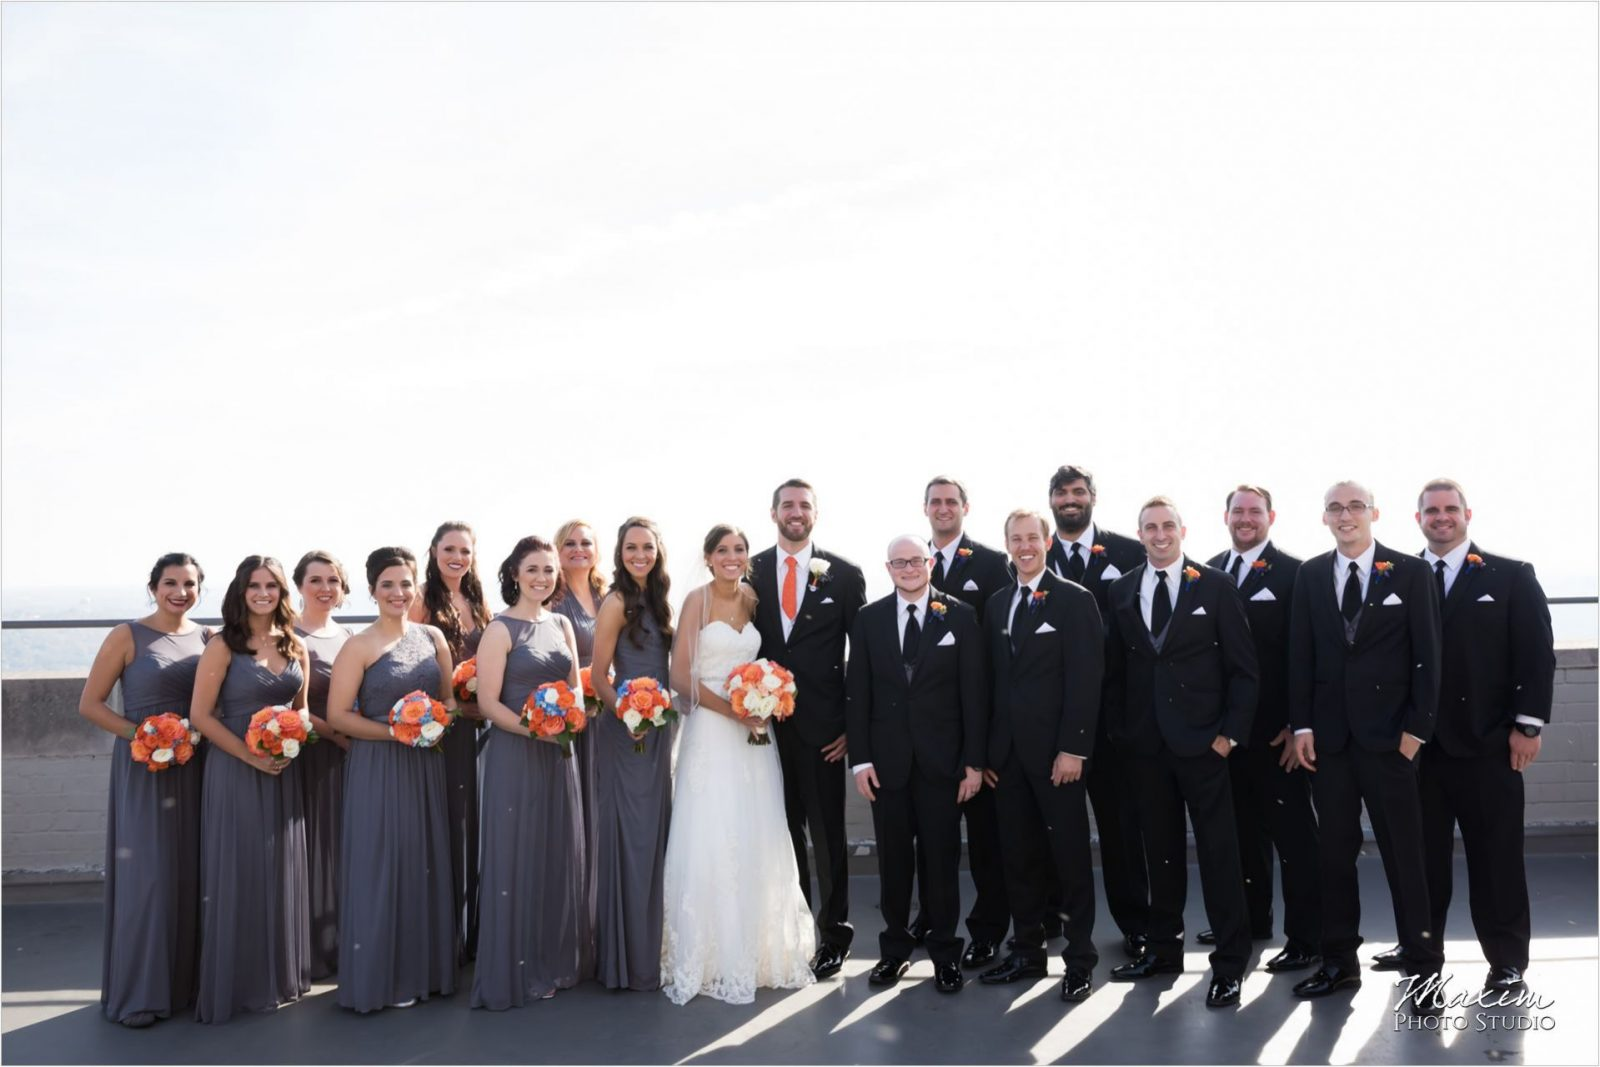 Carew Tower Observation Deck Cincinnati Wedding